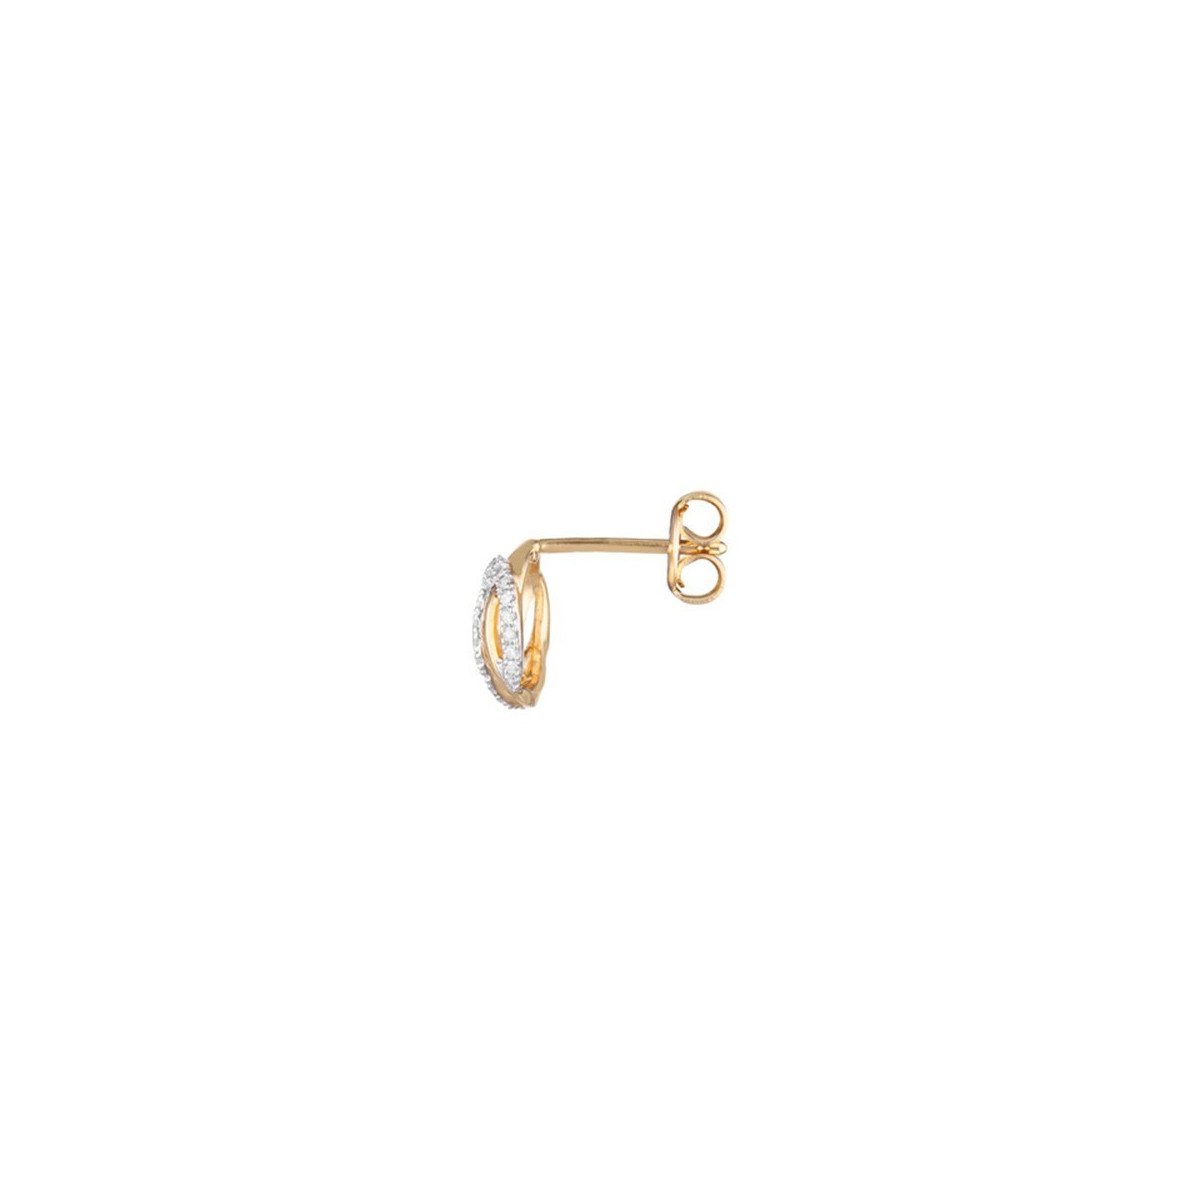 "Boucles d'oreilles Or Jaune et Diamants 0,16 carat ""GOLDEN EYE"""